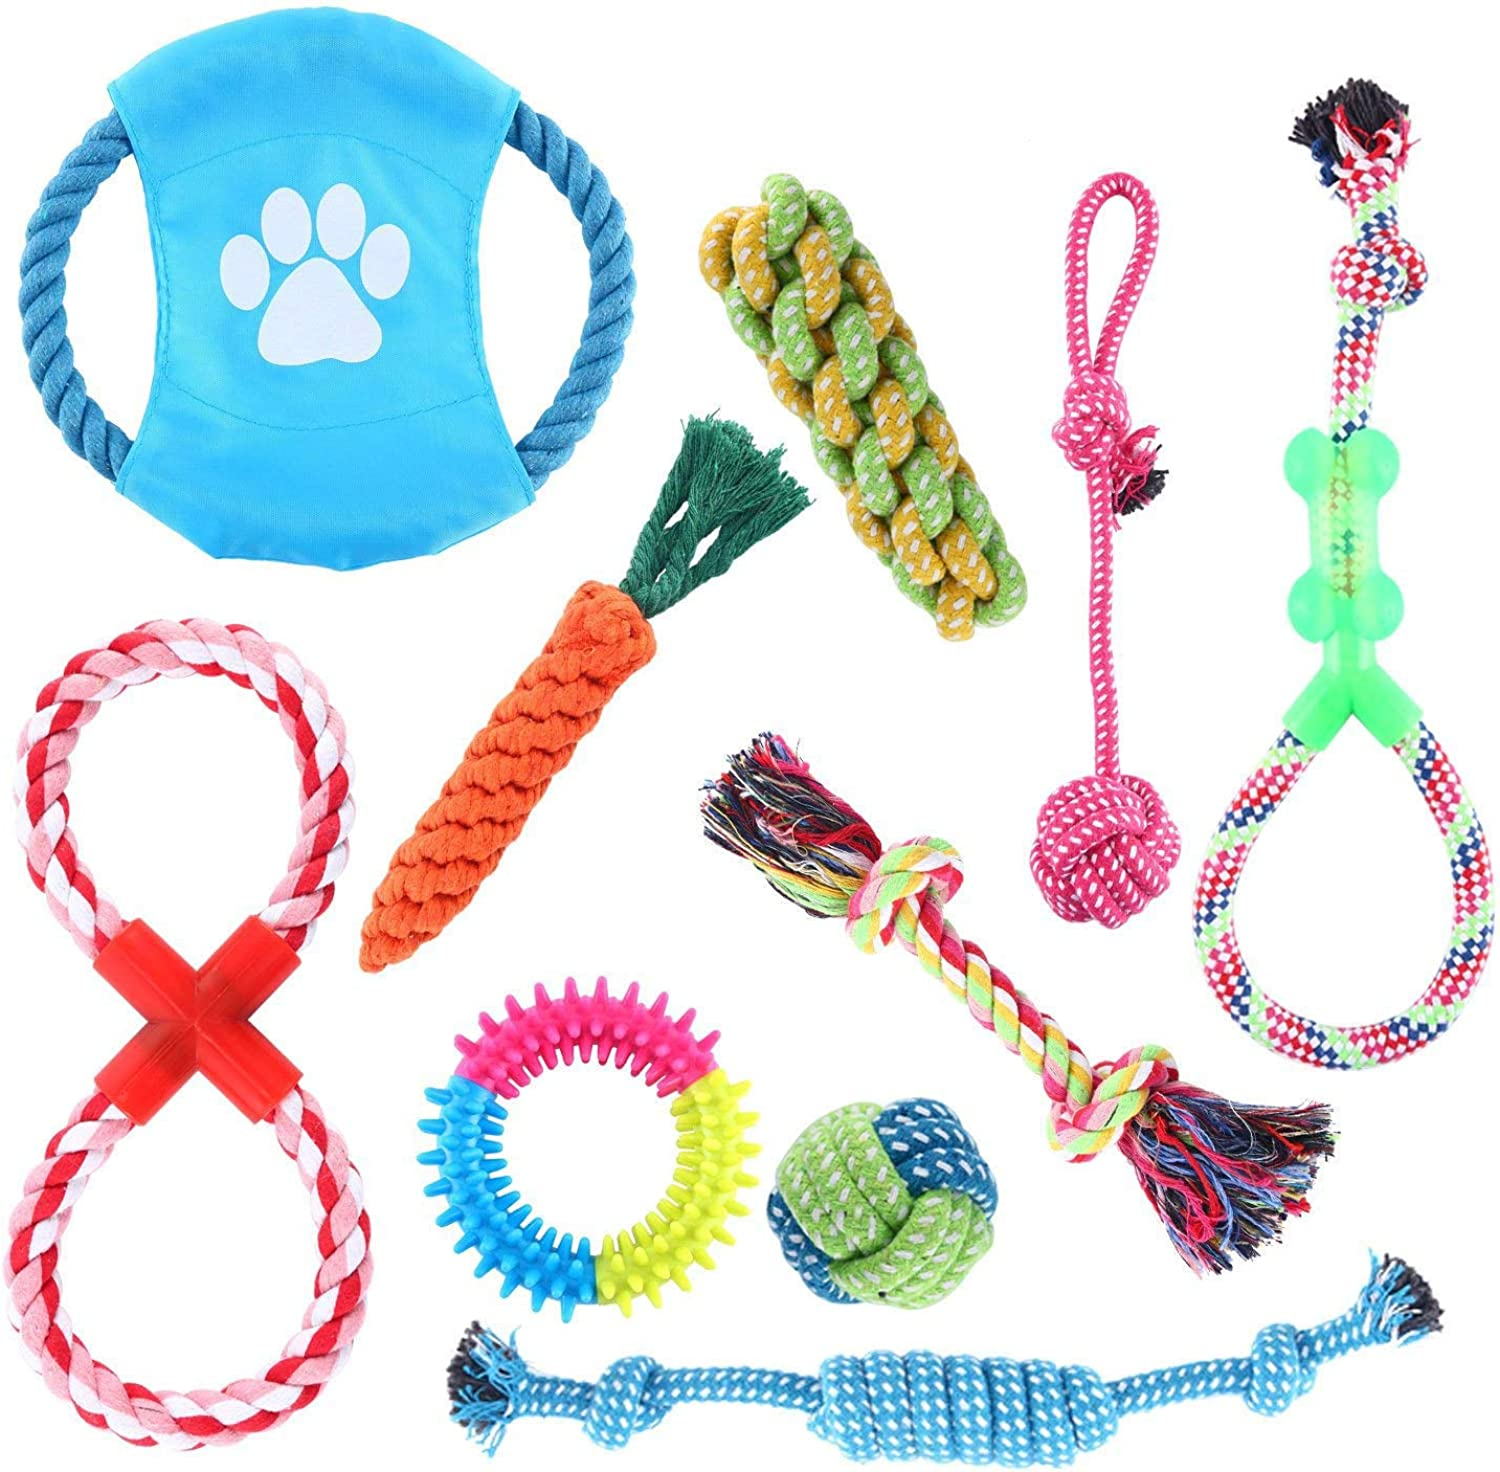 Homend Rope Toys Puppy Chew Toys Set of 10, Dog Cotton Rope Knot Toys and Dog Ball for Small Medium Large Breeds, Nature Teething Toy for Dental Health, StressFree Dog Training Gifts (Set of 10)